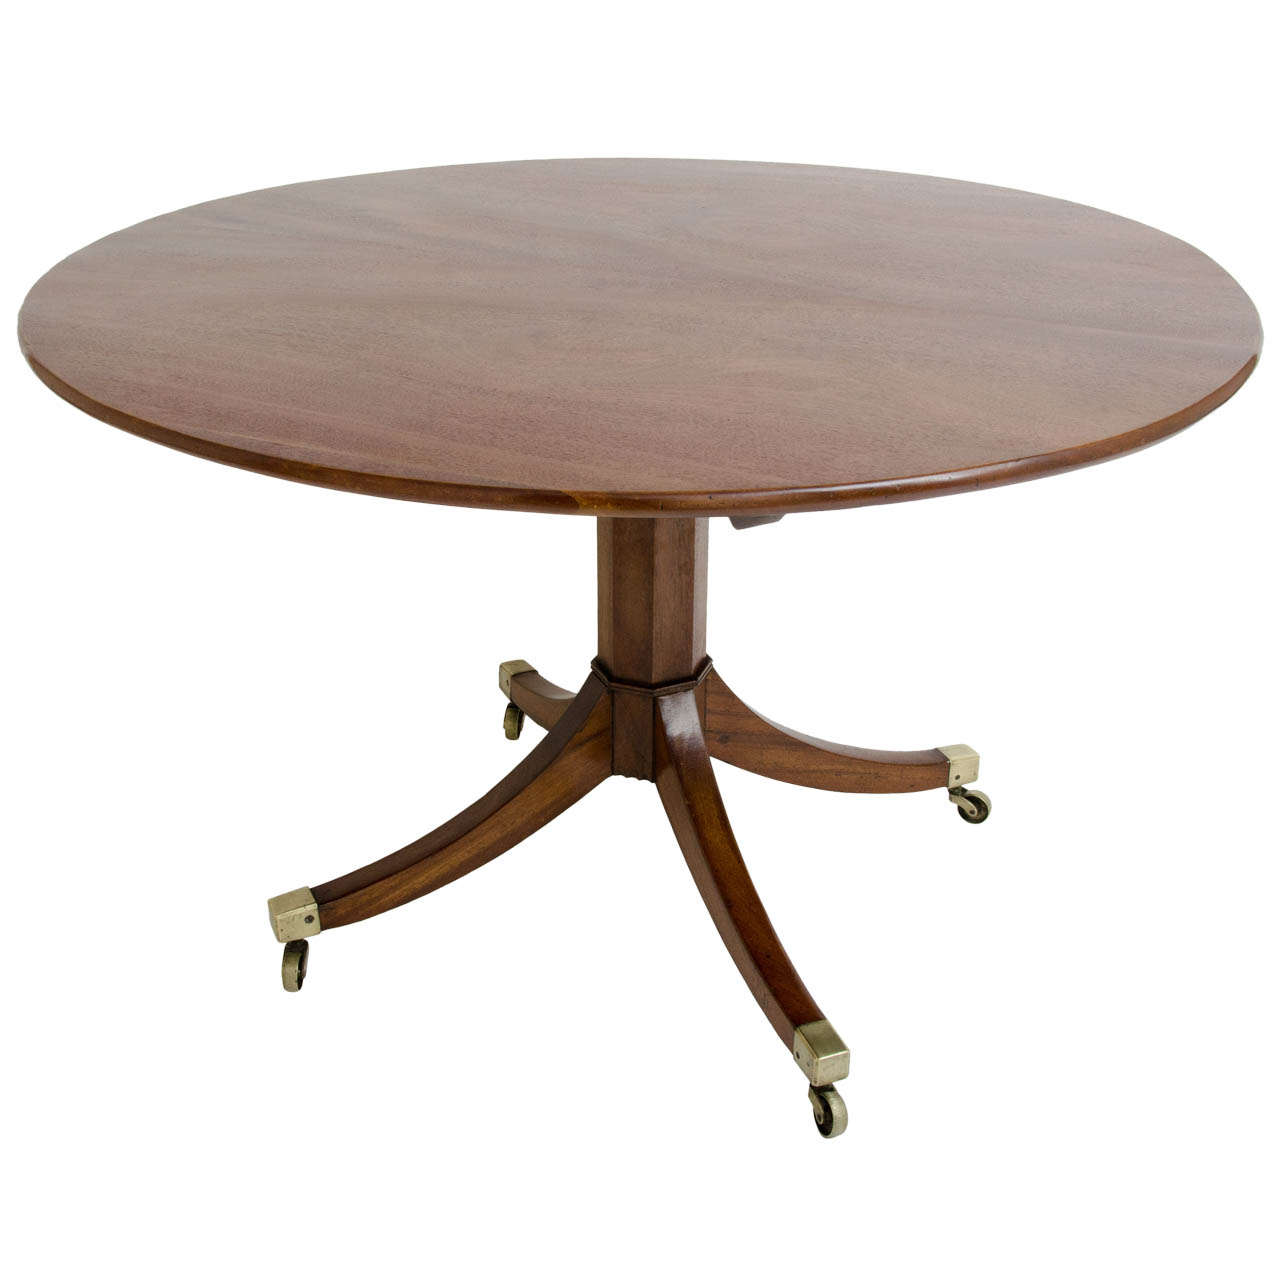 Early 19th century regency mahogany center table at 1stdibs for Table th center